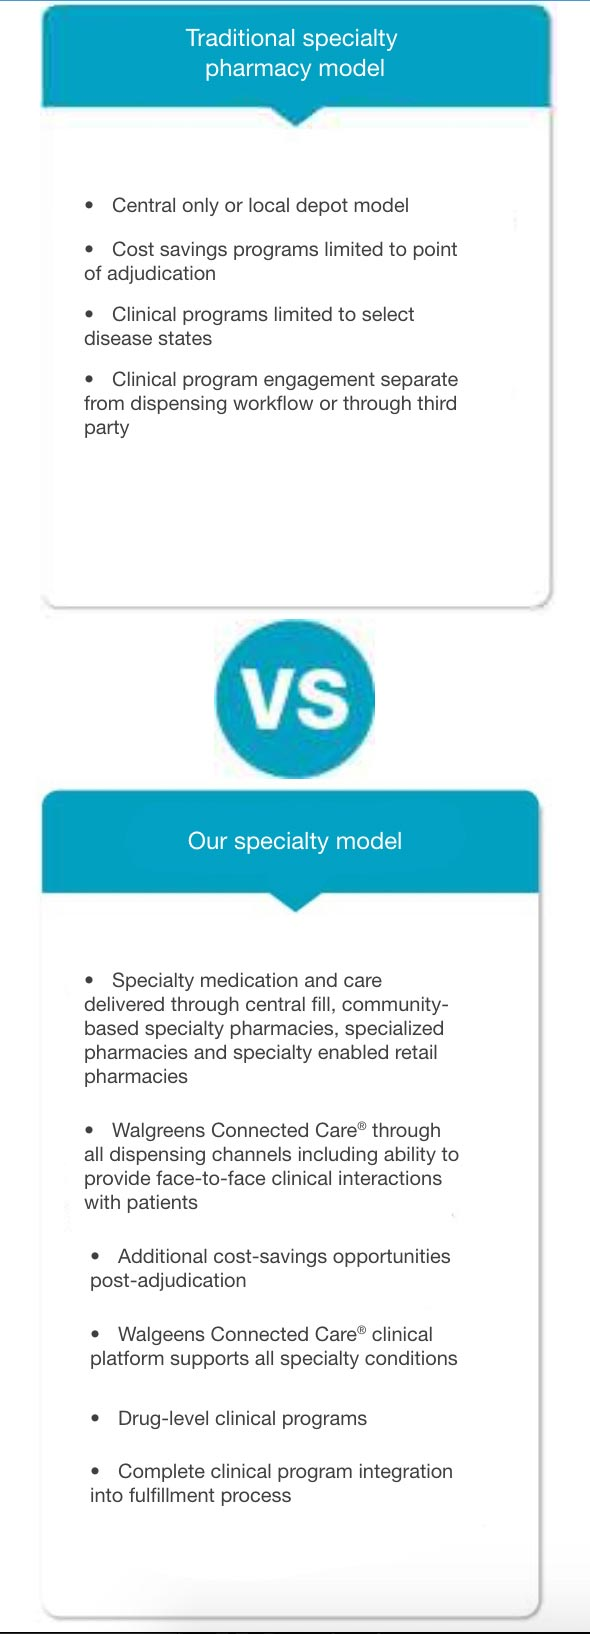 Traditional specialty pharmacy model vs Our specialty model